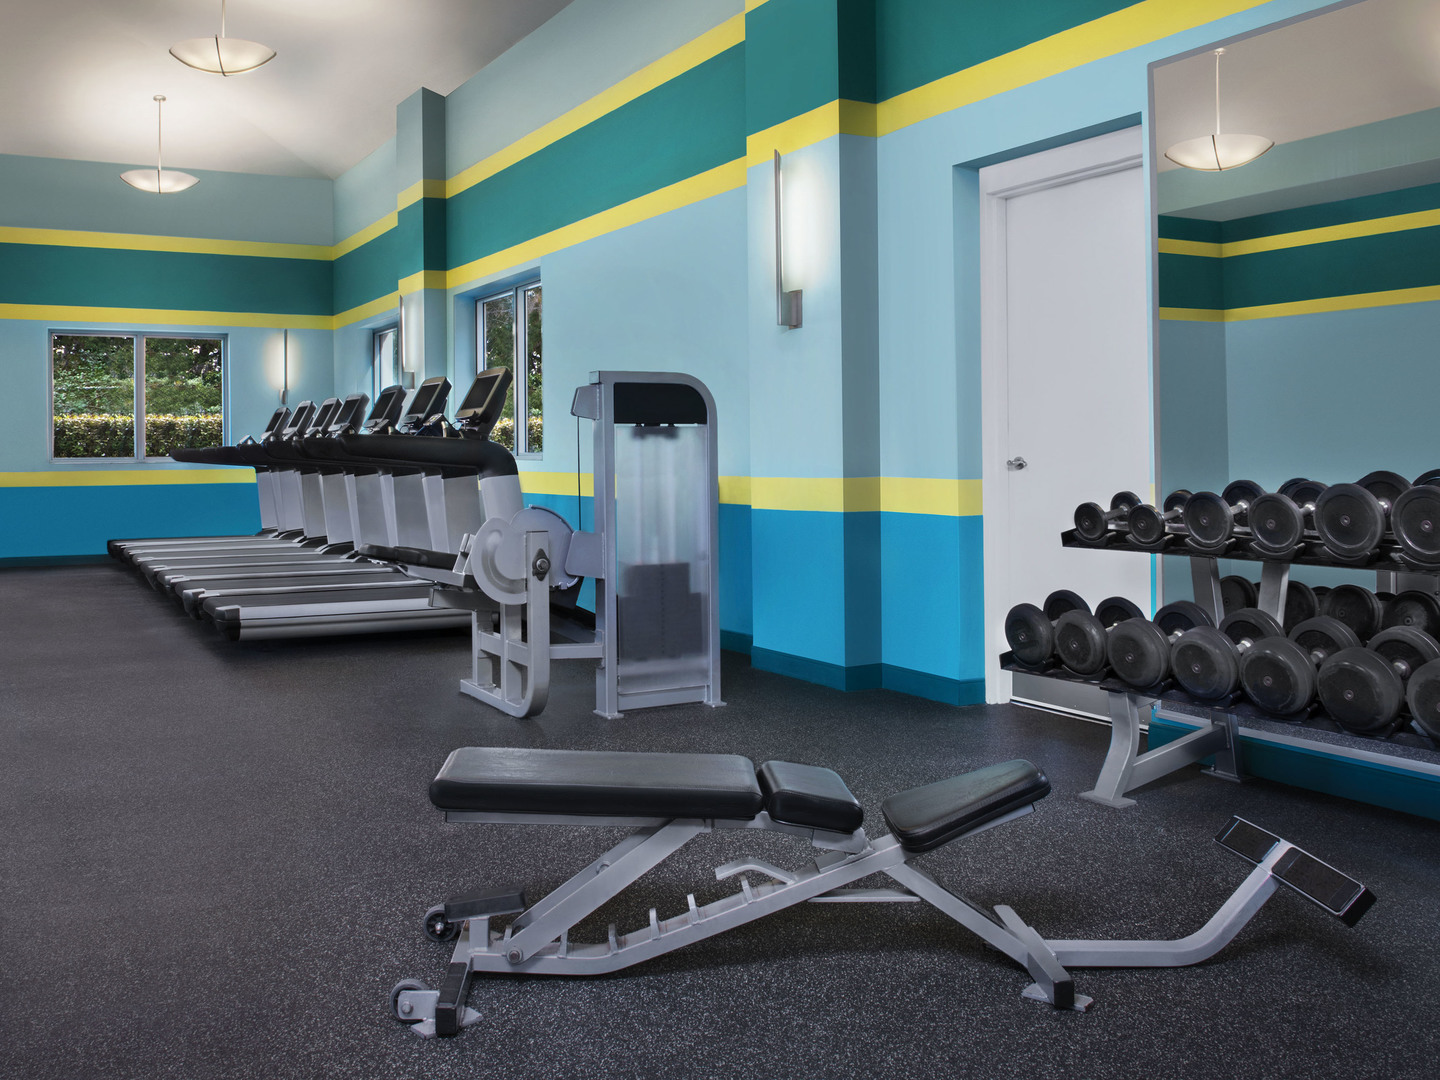 Marriott's OceanWatch Fitness Center. Marriott's OceanWatch is located in Myrtle Beach, South Carolina United States.